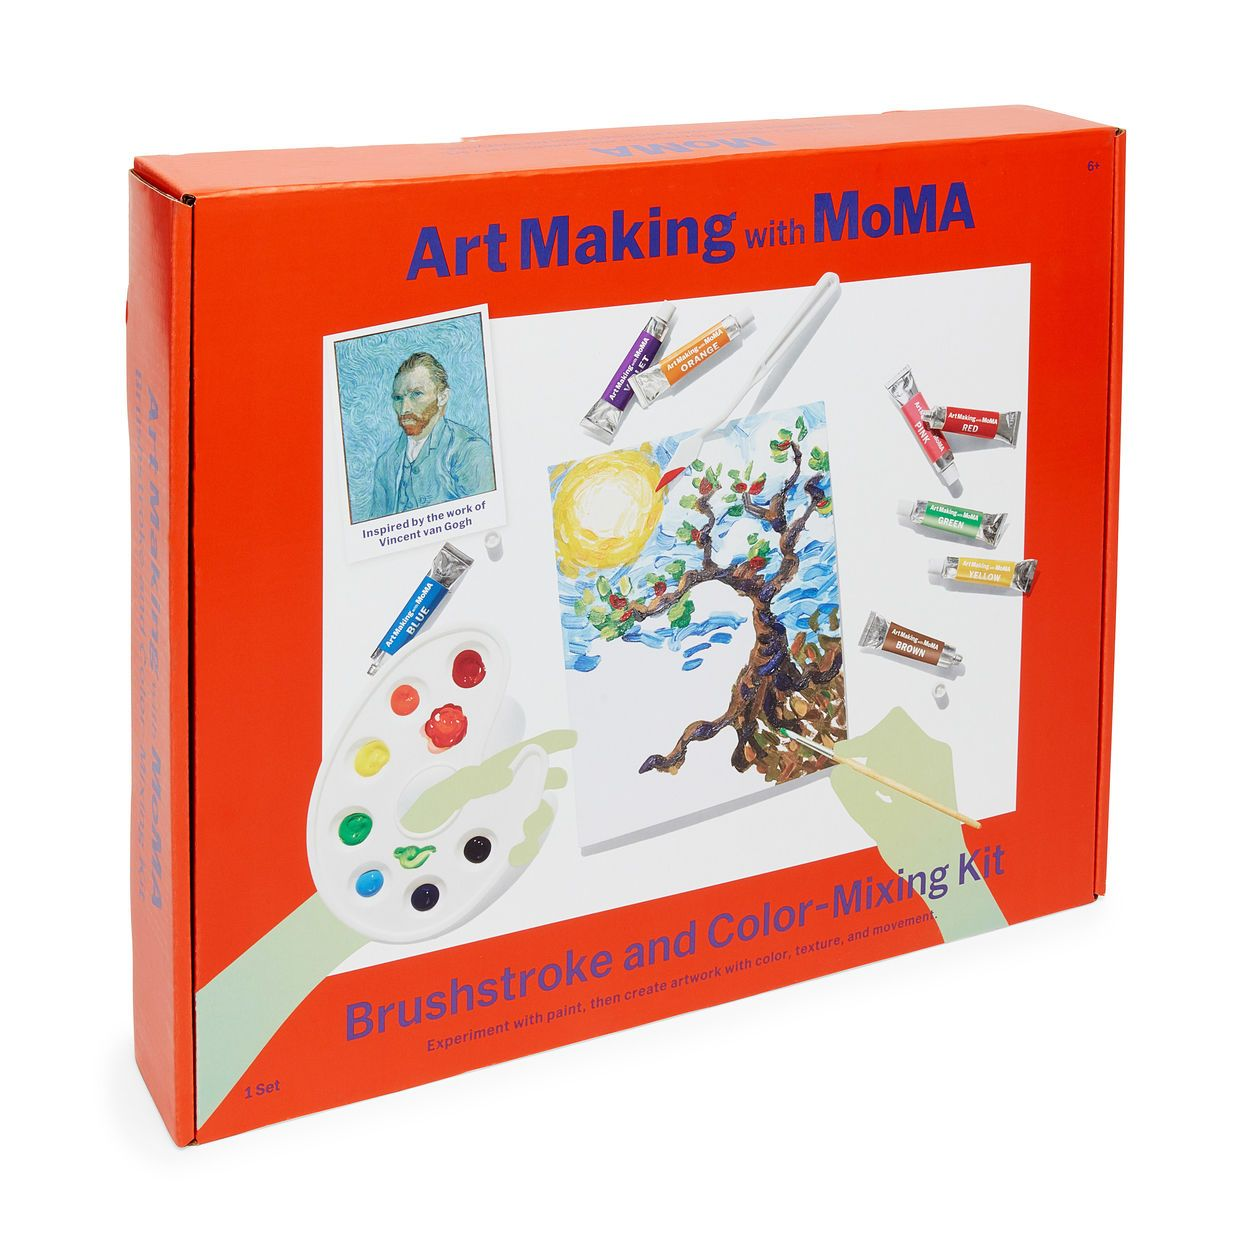 Art Making with MoMA: Brushstroke and Color-Mixing Kit in color